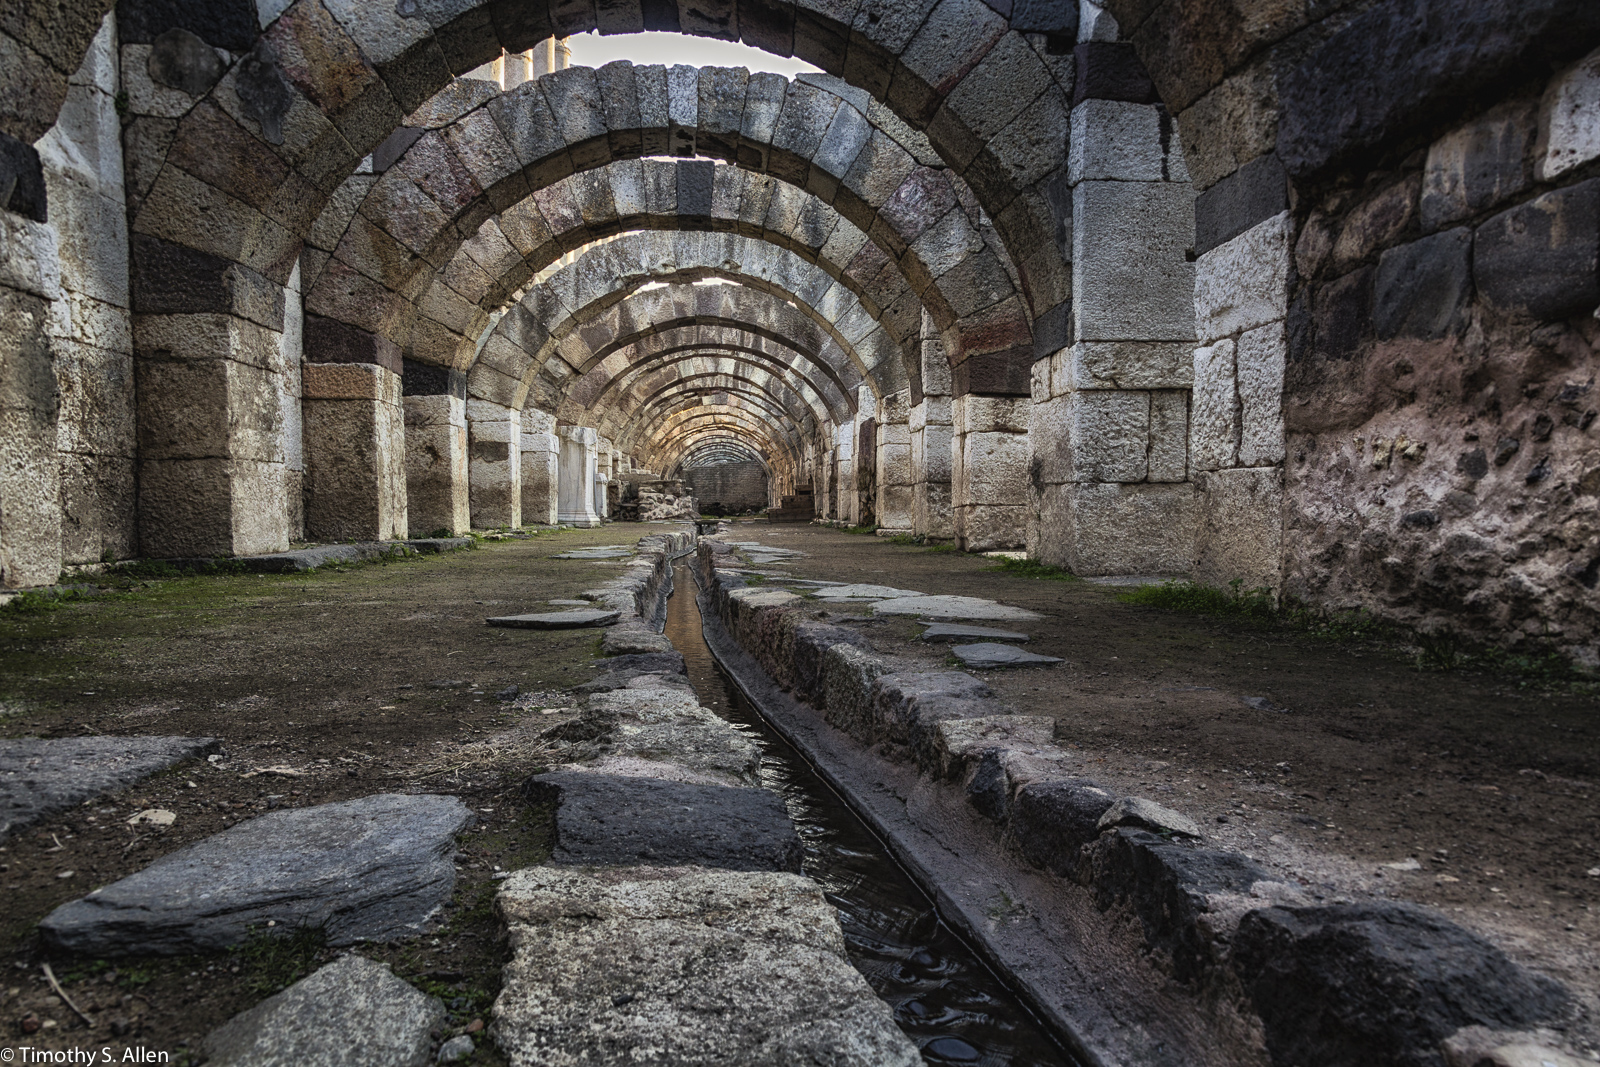 Street in Agora, Ancient Historic Site, Izmir, Turkey December 13, 2015 Agora, ancient market place, was first built in the 4th century BC to the north of Pagos (Kadifekale) where Smyrna was moved after Bayrakli. Like all other Agoras of the ancient world, it was a meeting place for all commercial, political, and religious activities for the local people. It was surrounded mostly by state buildings on a rectangular plan with a large central courtyard and a covered stoa around it. The agora was destroyed several times by strong earthquakes and it was rebuilt after each one of them, final restoration was done by Roman emperor Marcus Aurelius when a major earthquake hit the city in 178 AD. Northern and western stoas have been excavated including their basements, and a large 165 x 28 m basilica has been found on the northern stoa. One of the main streets of Smyrna city was cutting through the agora dividing it in two equal parts, and there were entrance gates at both ends. The excavation works are still ongoing at the agora for the basilica and a part of the eastern stoa. http://www.allaboutturkey.com/izm_site.htm